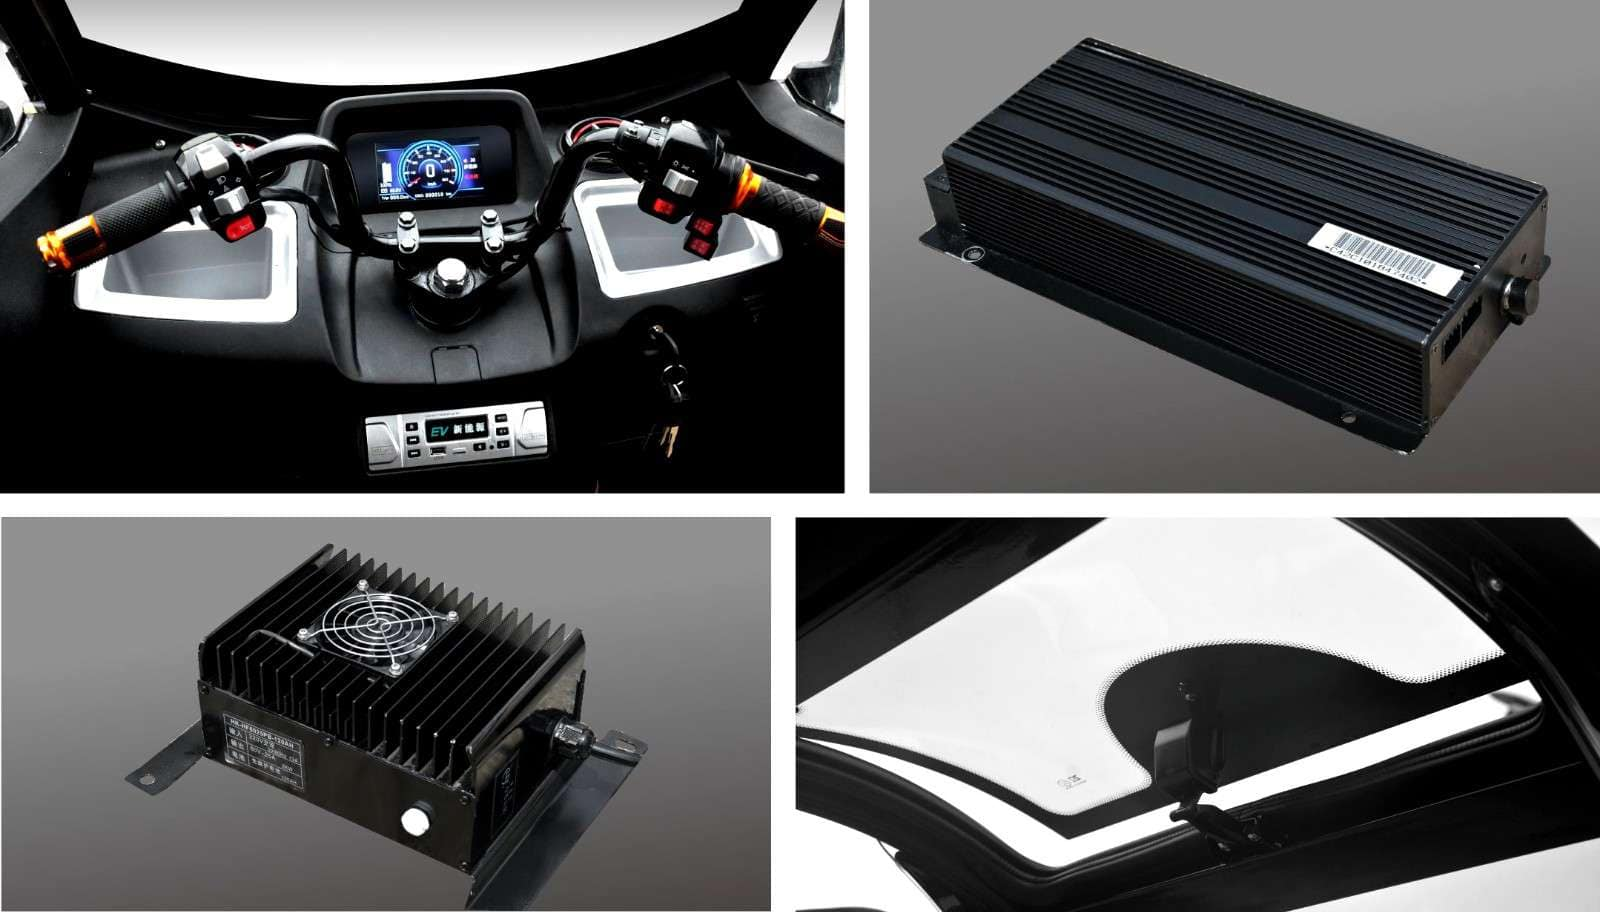 T-series collage with interior photos and battery component